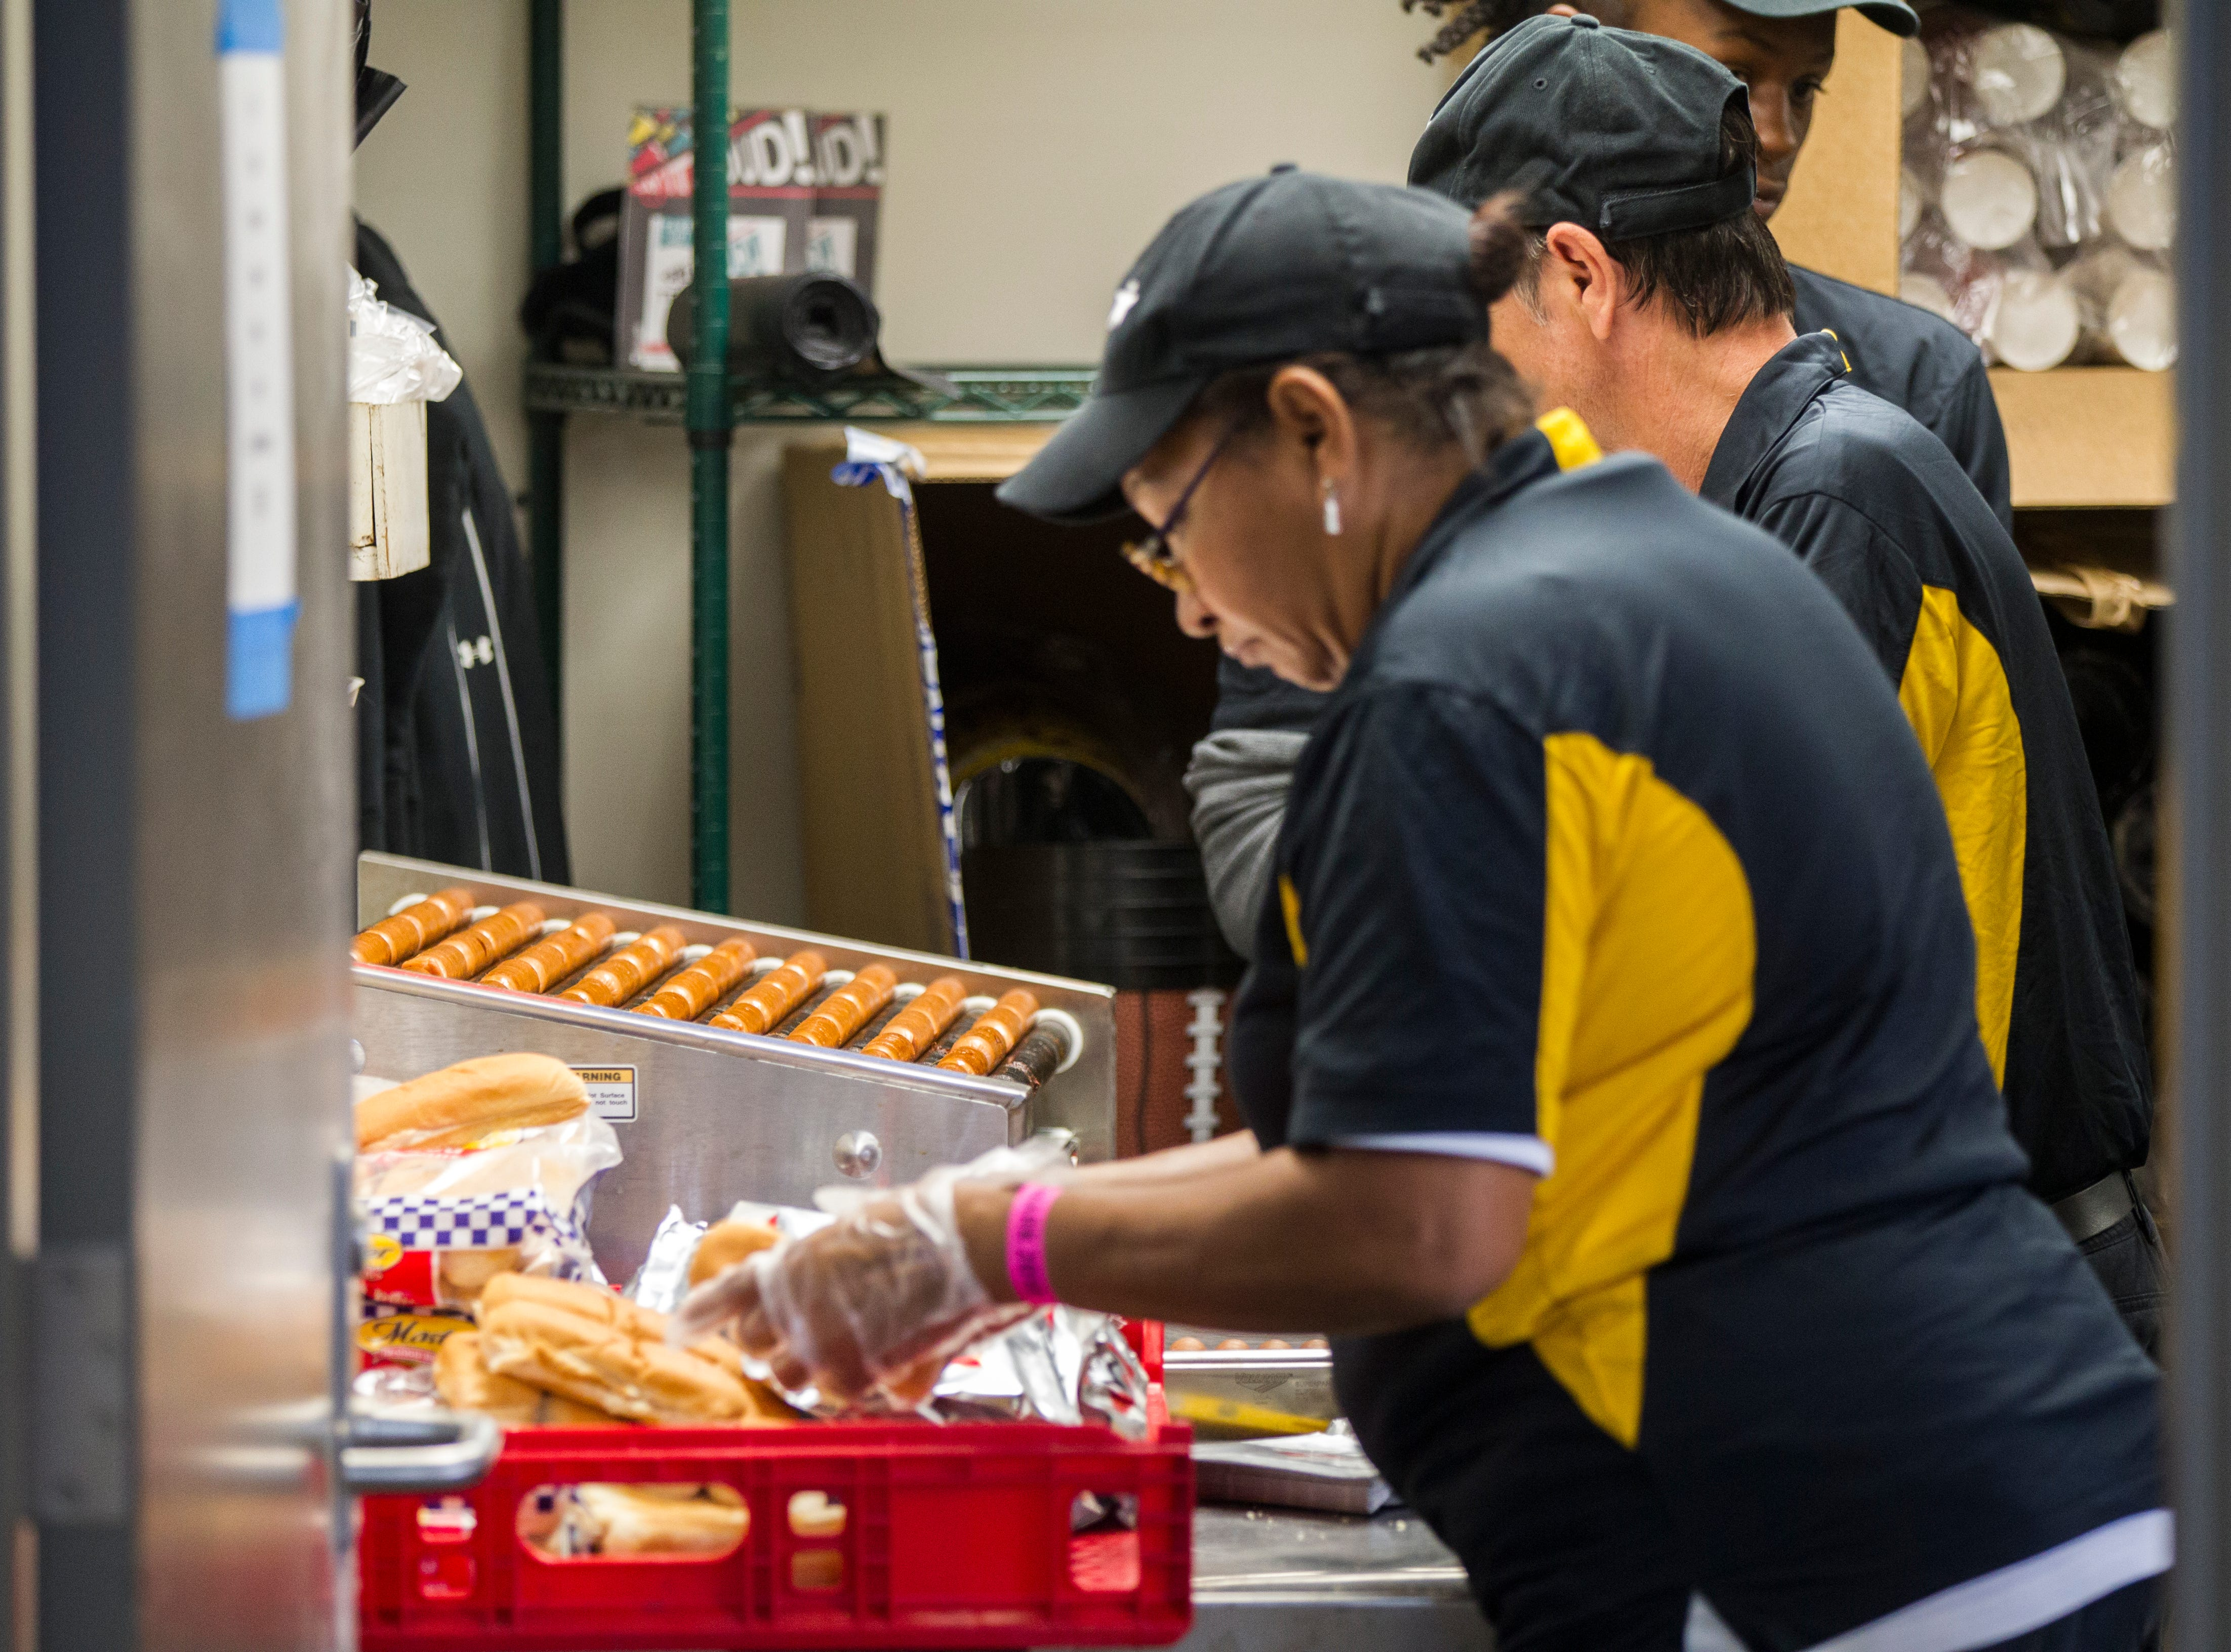 Concession workers prepare hot dogs before the Cy-Hawk NCAA football game on Saturday, Sept. 8, 2018, at Kinnick Stadium in Iowa City.